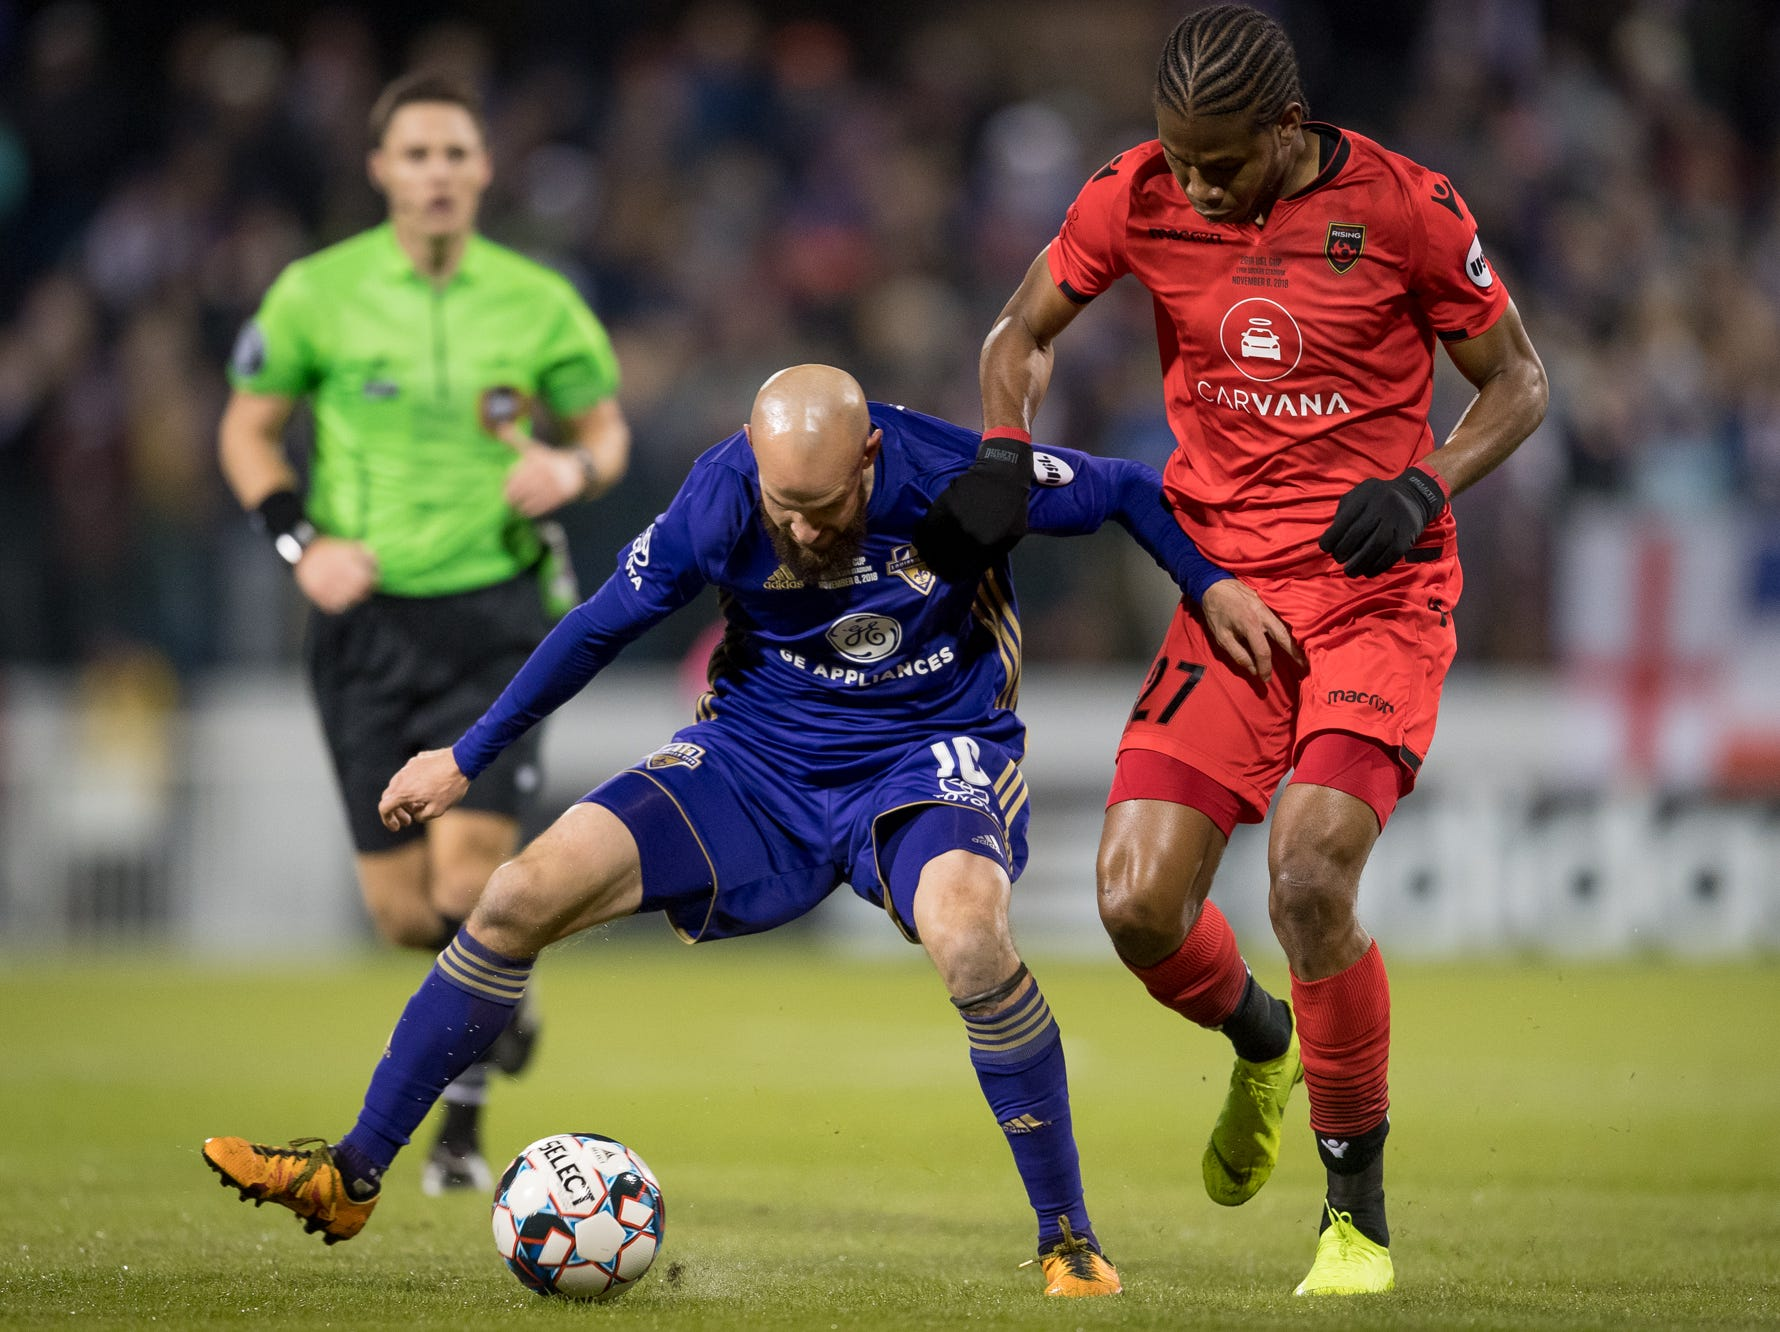 Louisville City FC midfielder Brian Ownby (10) plays against Phoenix Rising FC midfielder Kevon Lambert (27) during the first half of the USL Cup final played at Lynn Stadium on the campus of the University of Louisville, Louisville, Ky., Thursday, Nov., 8, 2018. (PHOTO Bryan Woolston)